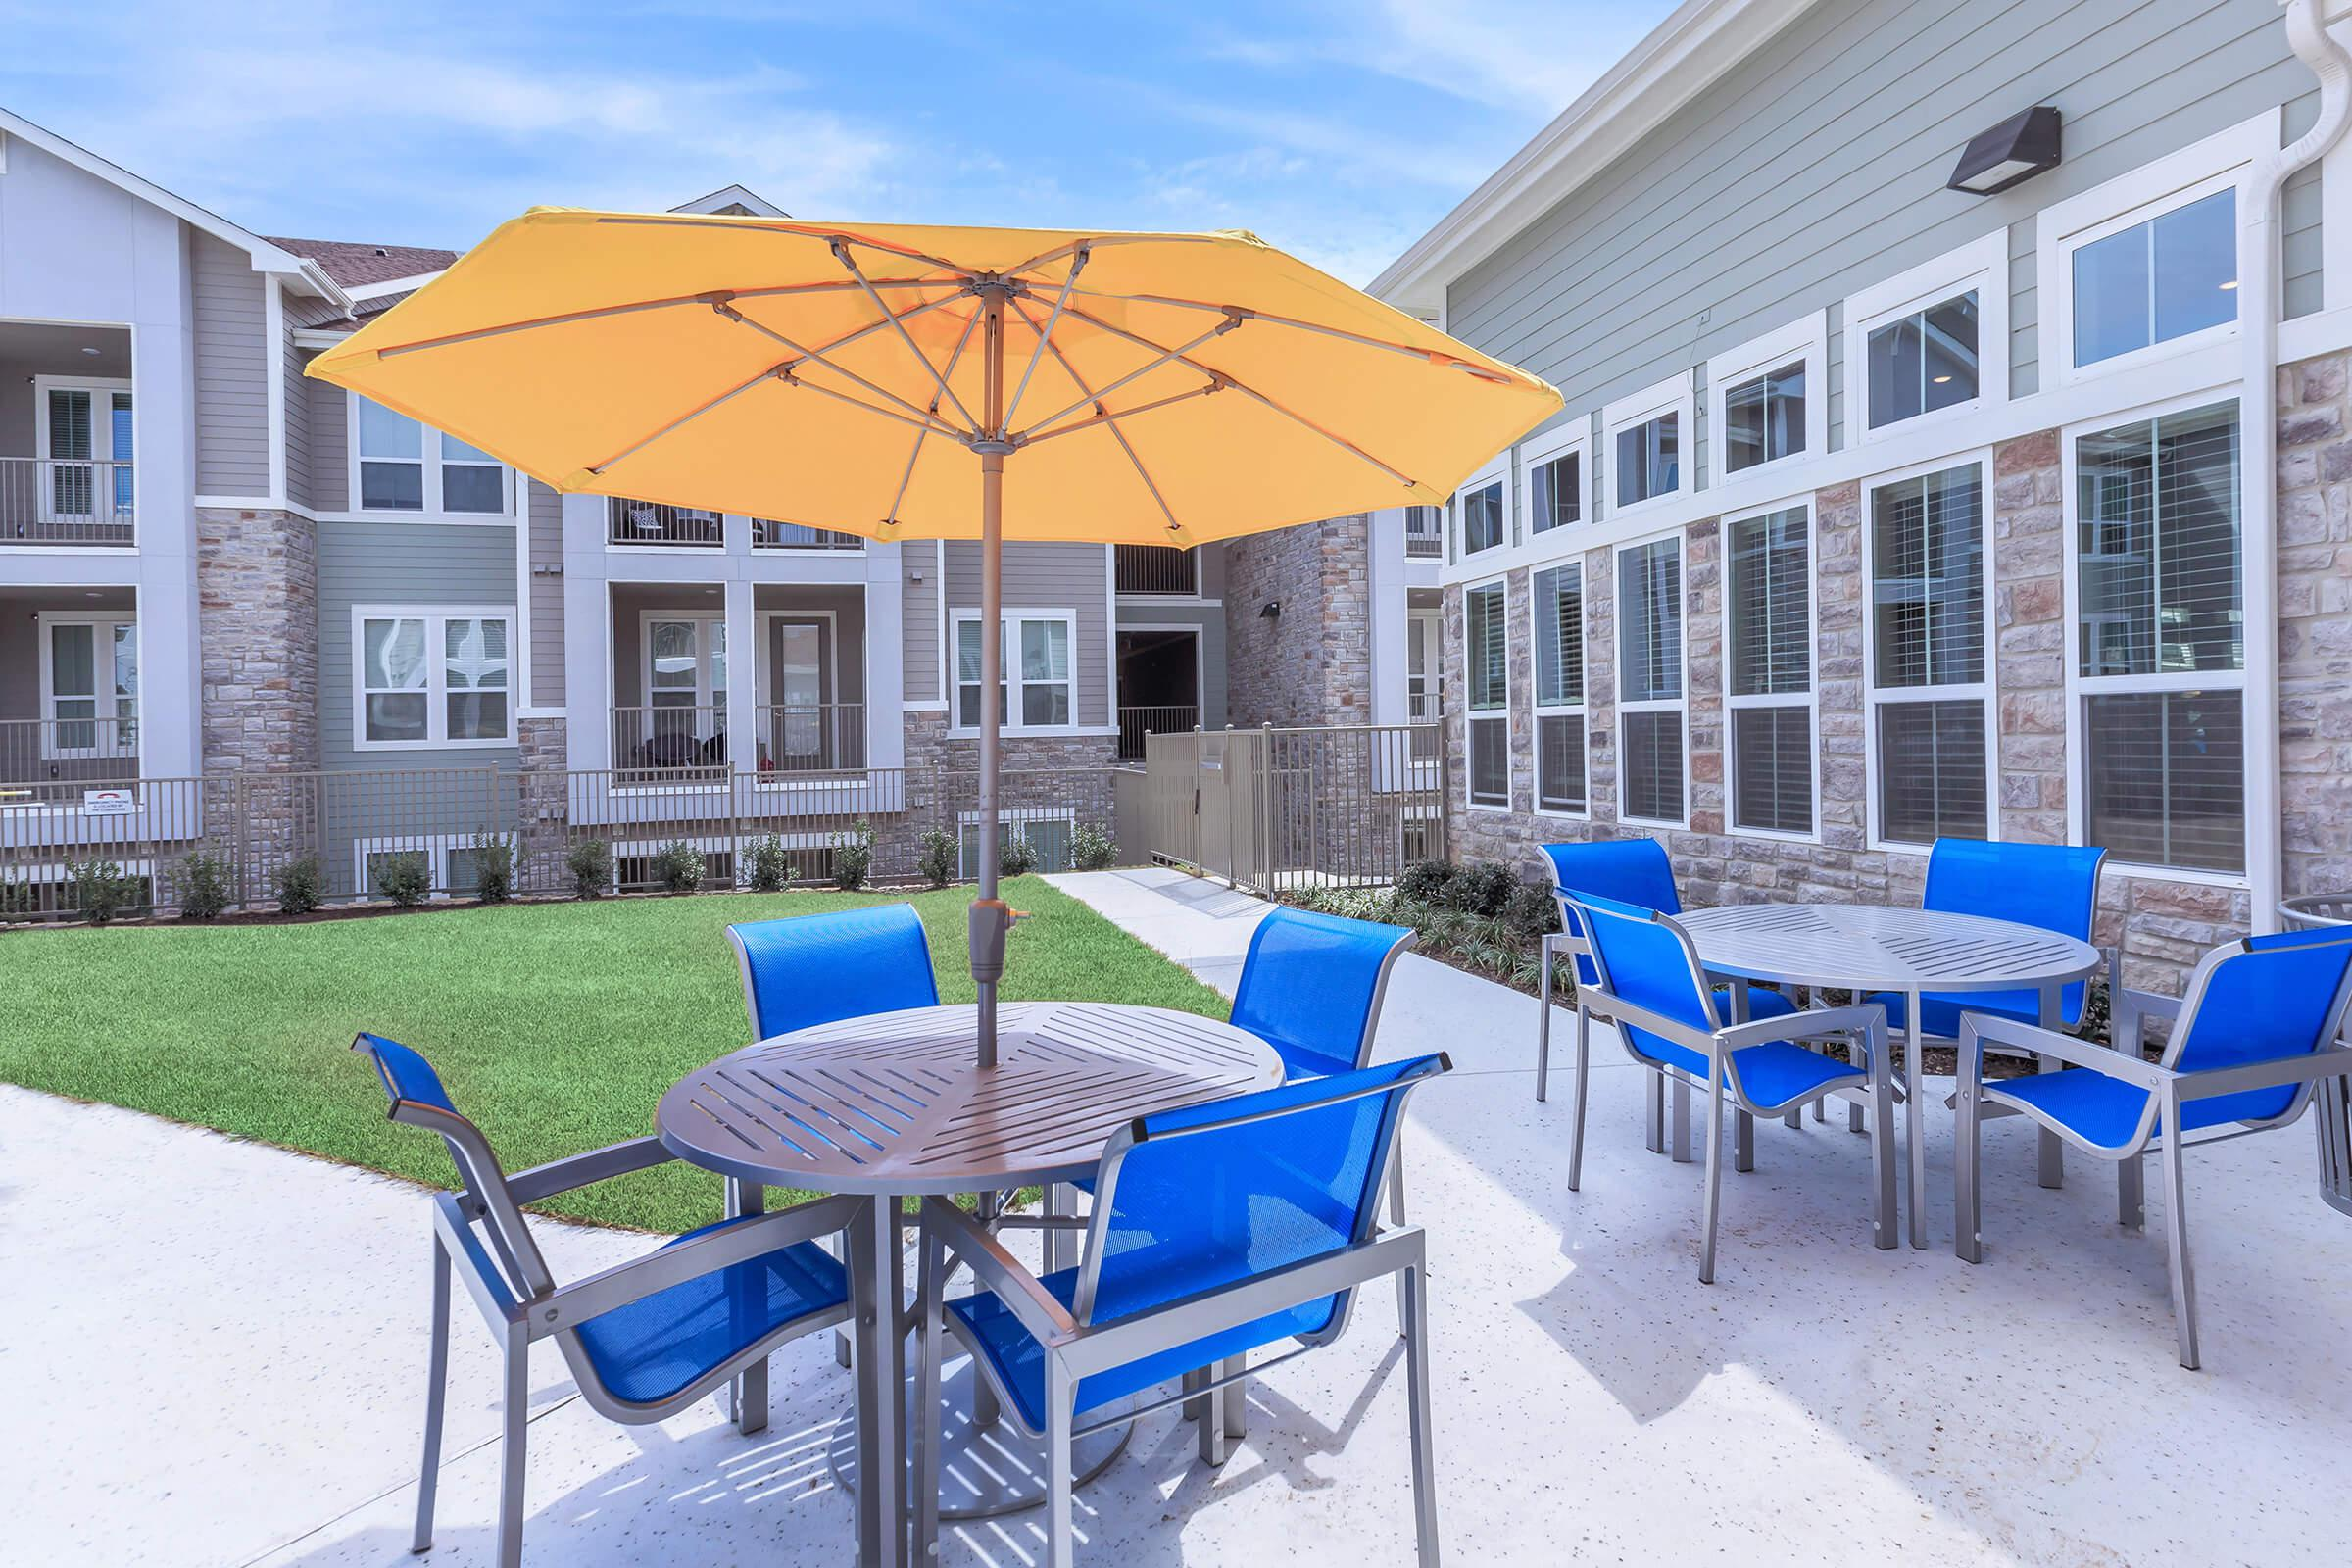 a group of lawn chairs sitting on a chair with a blue umbrella